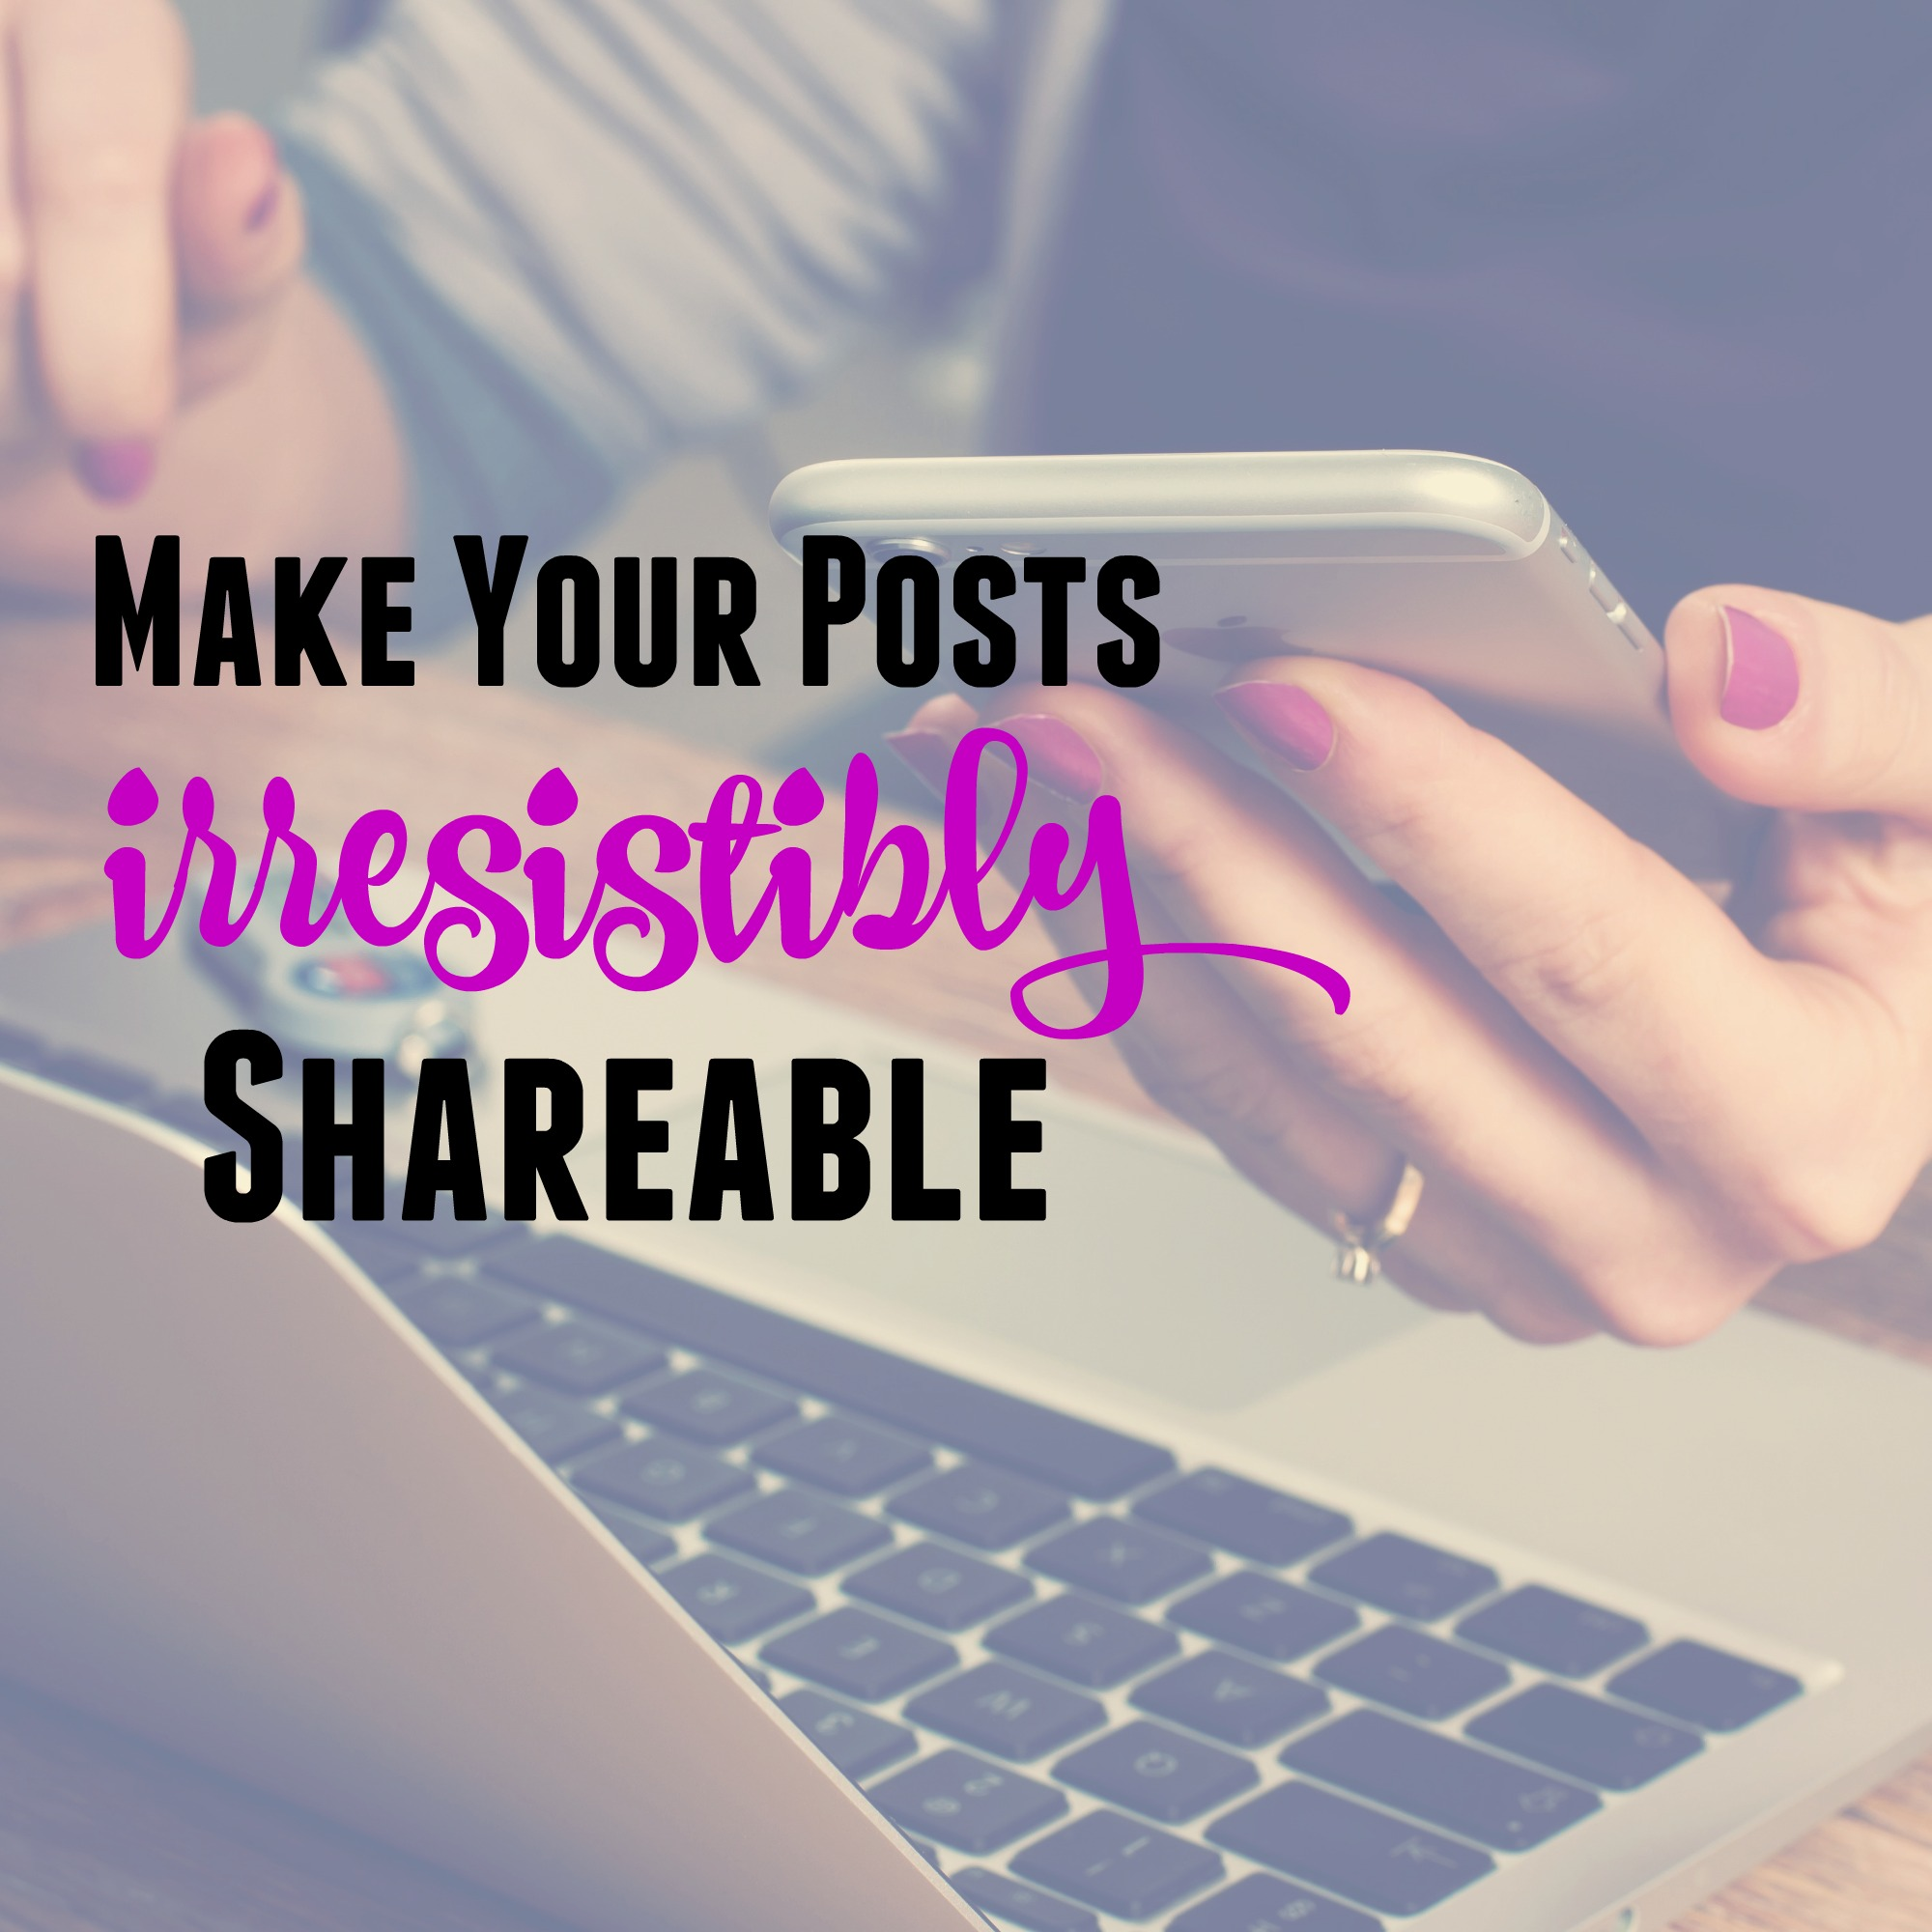 how to make my posts shareable on facebook